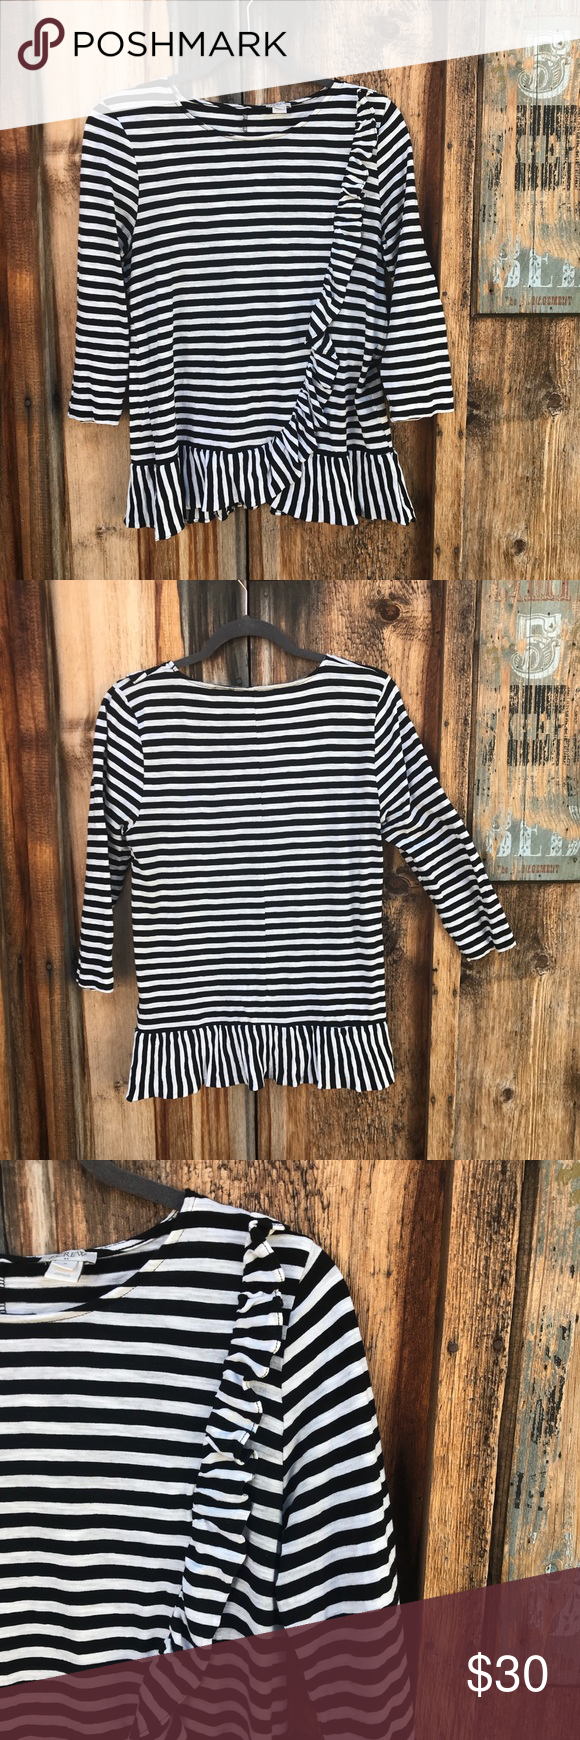 """J Crew Striped Cotton Top White top with black stripes and ruffle detail. Pair with most any color skinny jeans and ankle boots as we head into fall. Great condition. Shoulder to hem 25"""". Armpit to armpit 17"""". 100% cotton yet lightweight enough to have stretch. J. Crew Tops #skinnyjeansandankleboots J Crew Striped Cotton Top White top with black stripes and ruffle detail. Pair with most any color skinny jeans and ankle boots as we head into fall. Great condition. Shoulder to hem 25"""". Armpi #skinnyjeansandankleboots"""